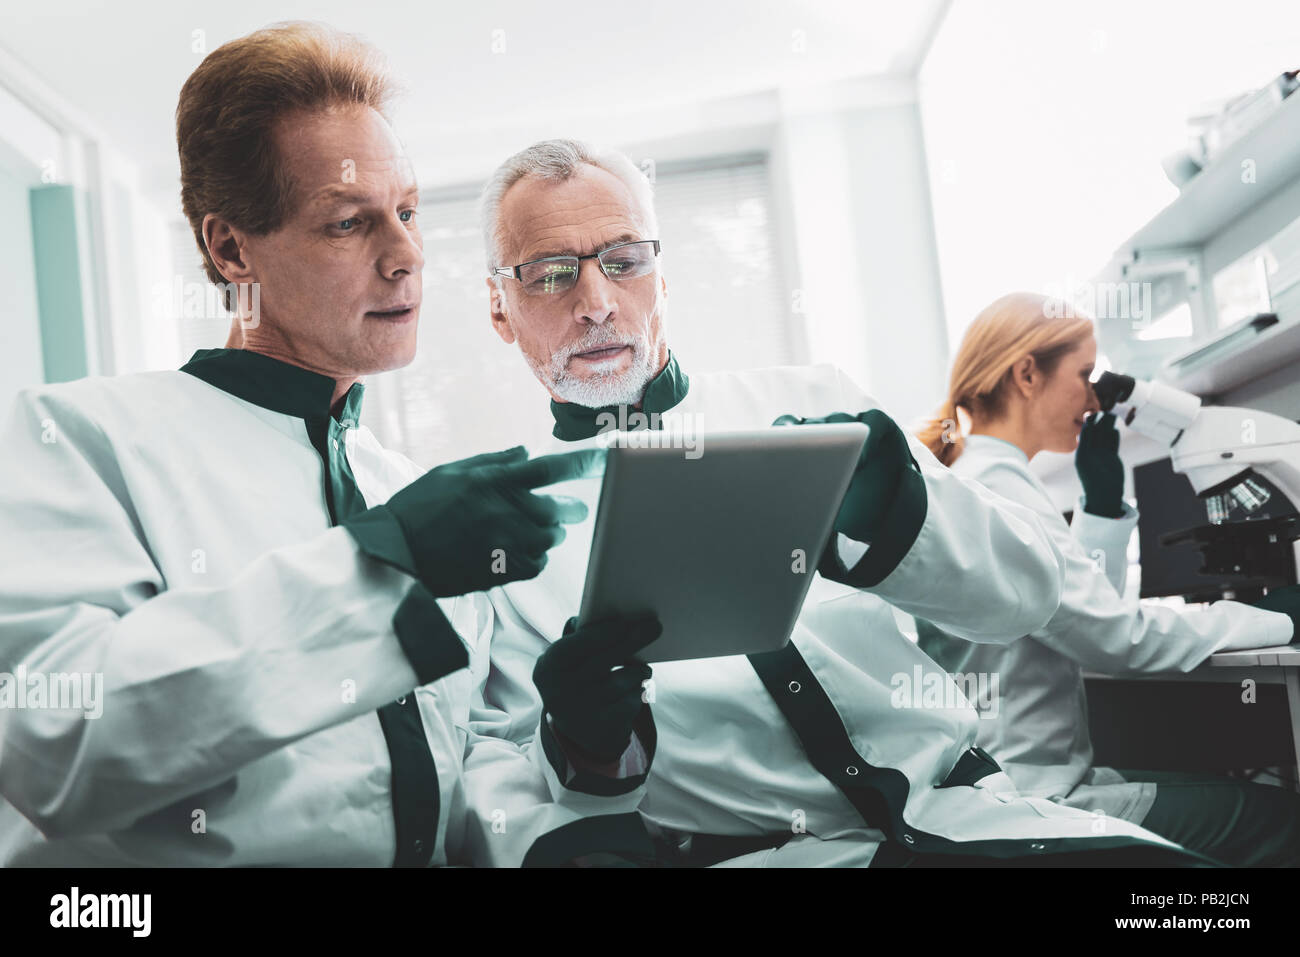 Bearded biologist asking piece of advice from his chef - Stock Image